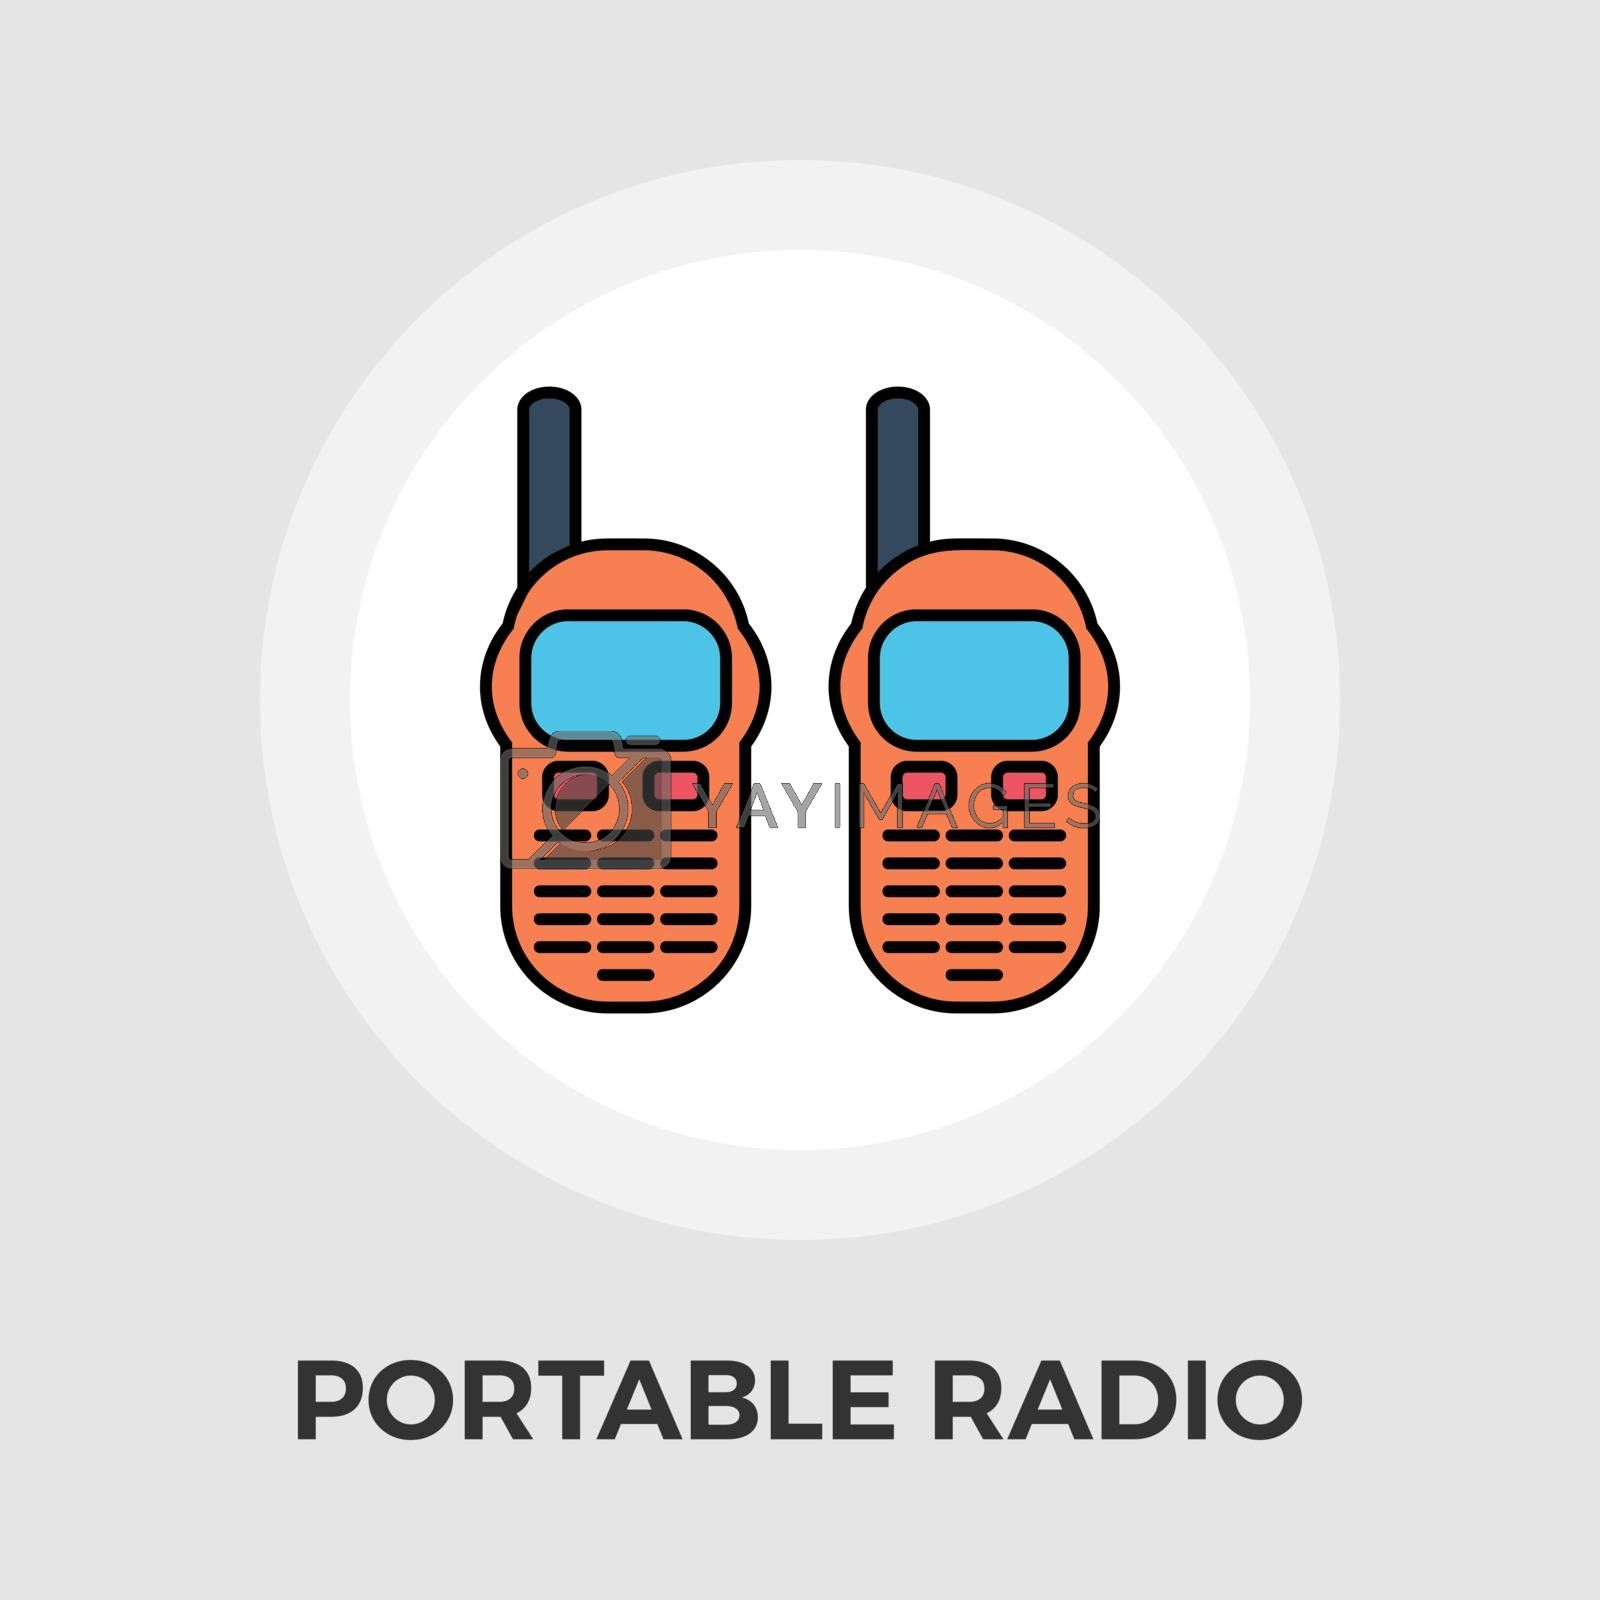 Portable radio icon vector. Flat icon isolated on the white background. Editable EPS file. Vector illustration.